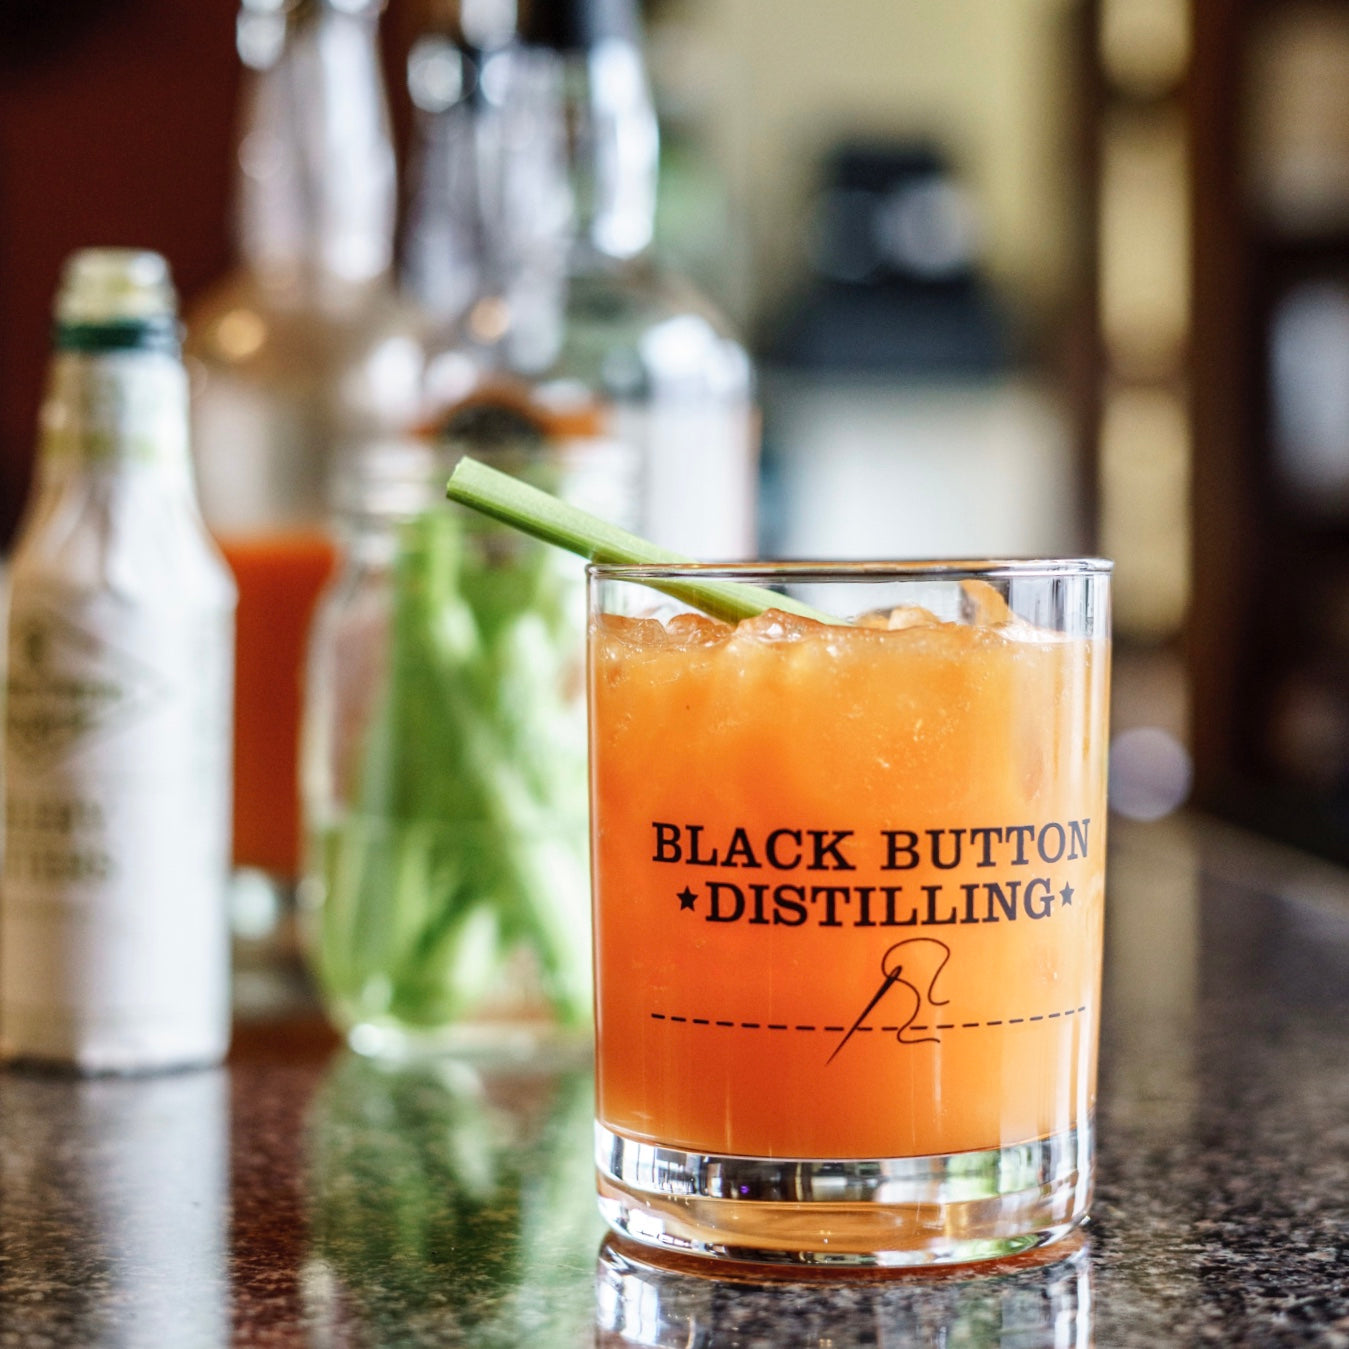 Carrot Top by Black Button Distilling